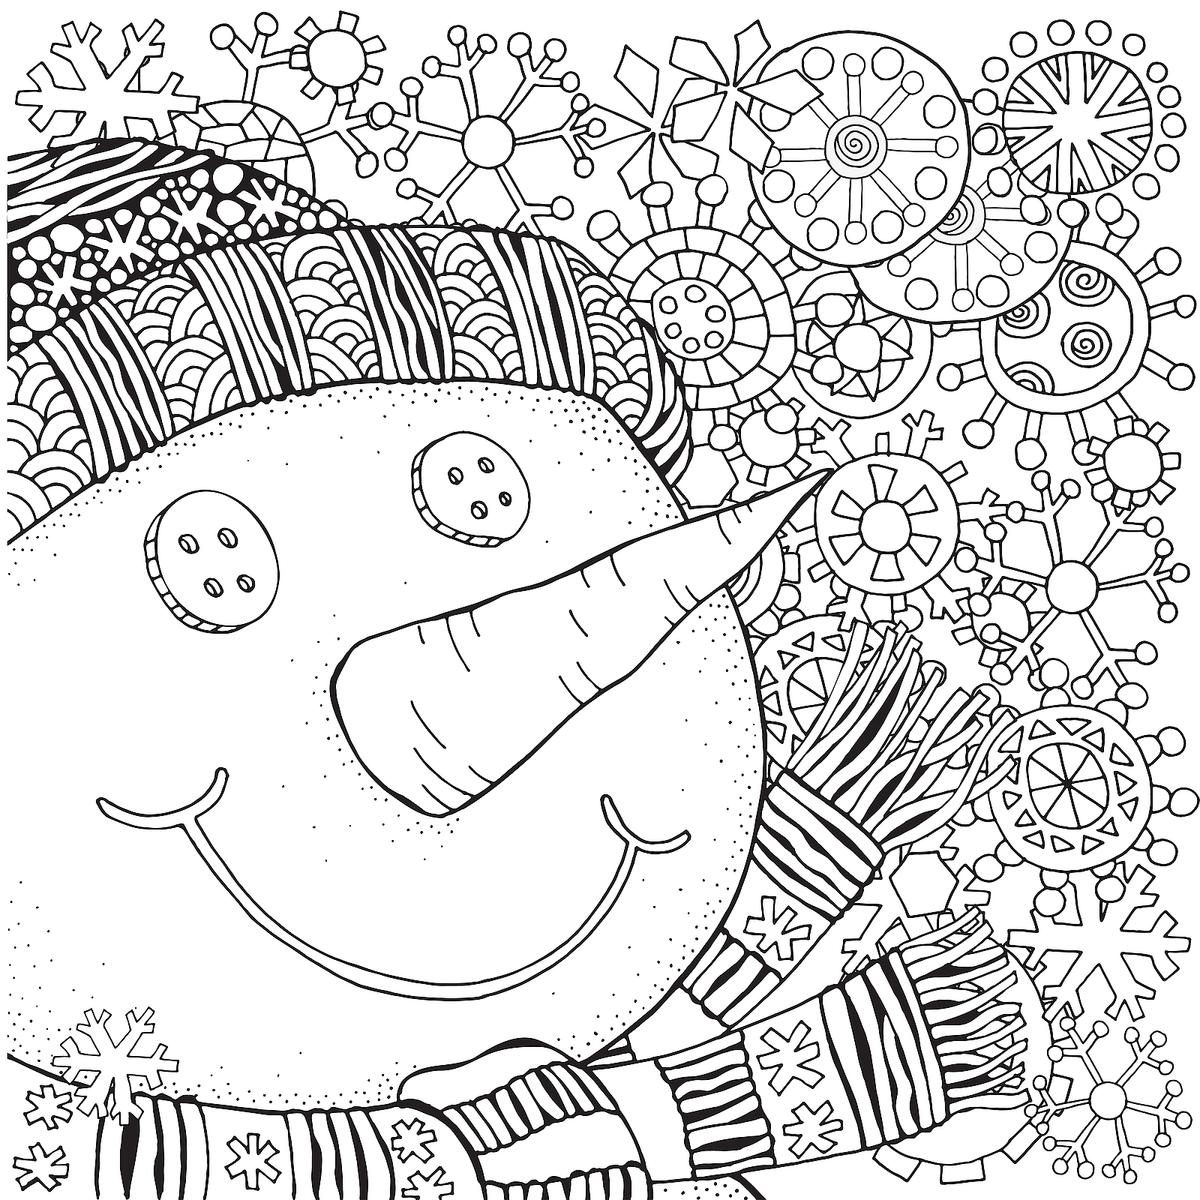 Snowman coloring pages | Free Coloring Pages | 1200x1200